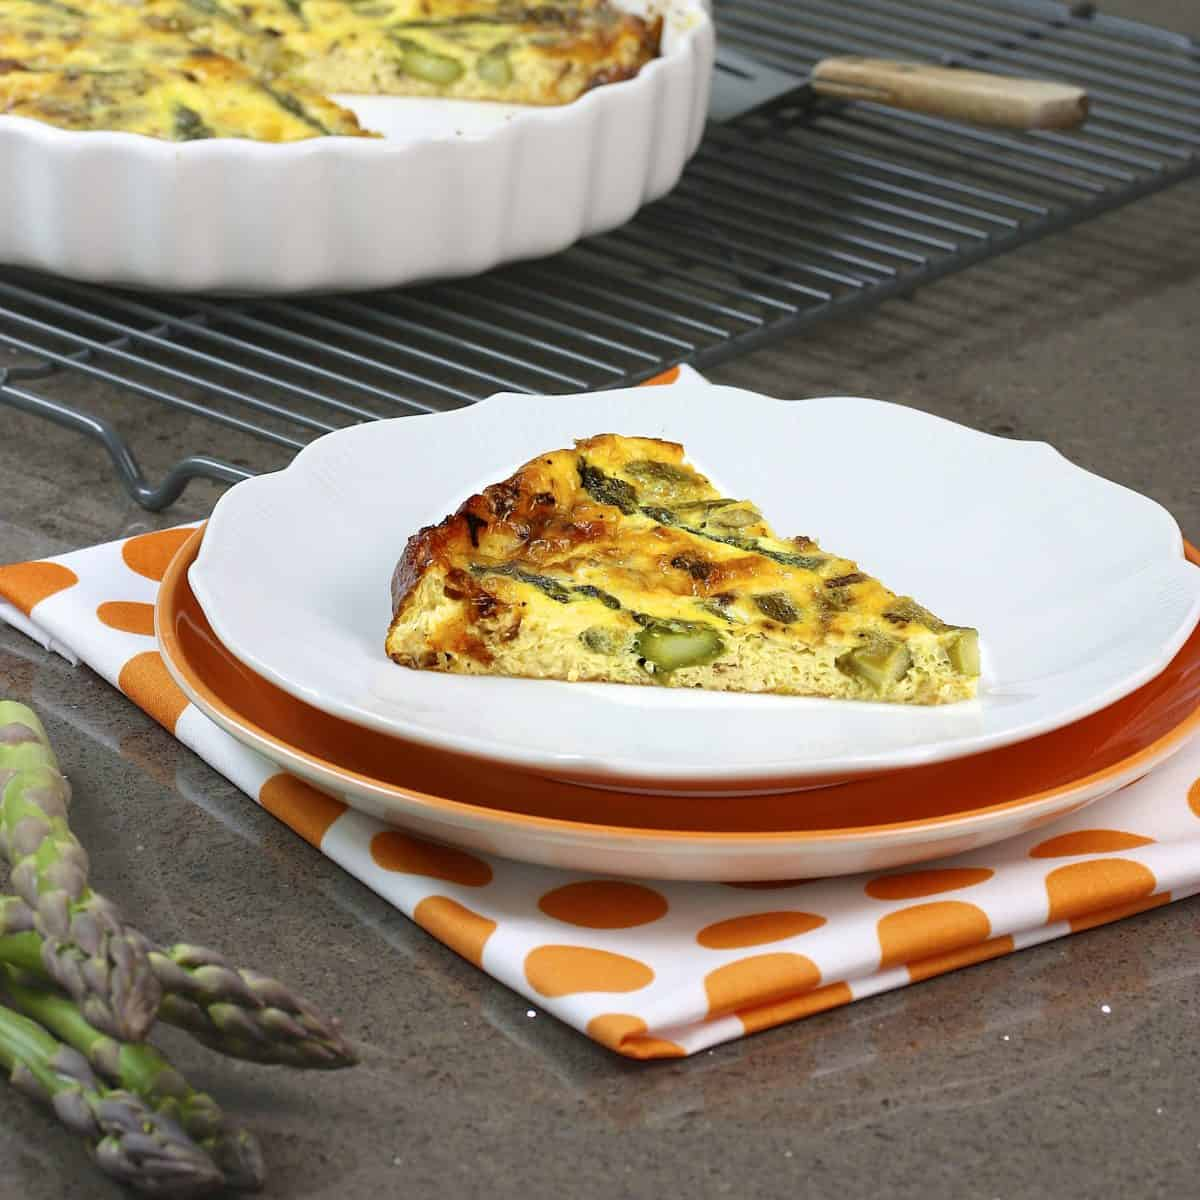 Asparagus Quiche recipe | Photo: Meal Makeover Moms / Flickr